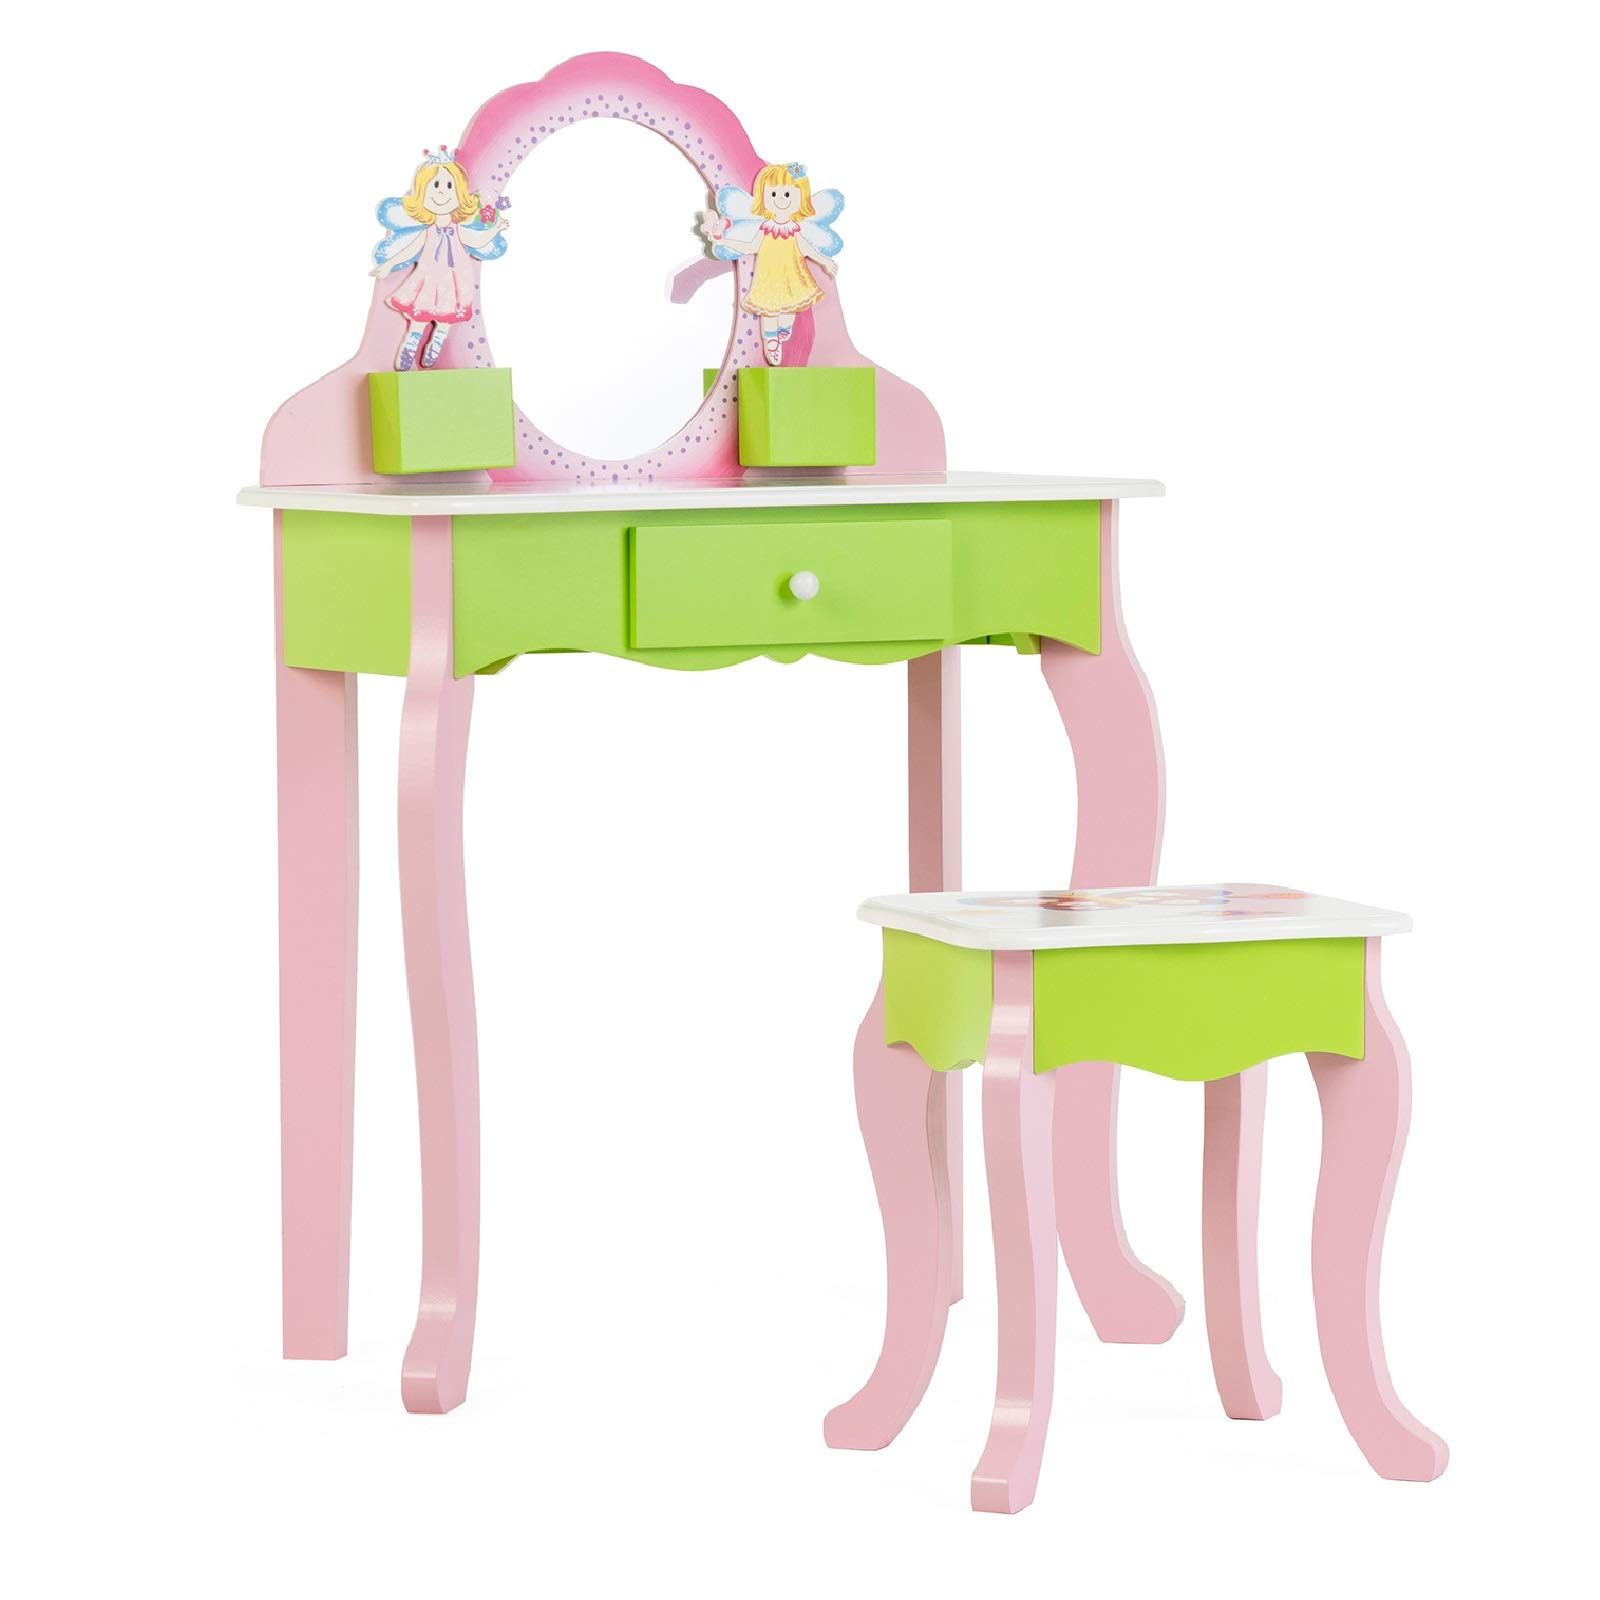 mecor Kids Vanity Set w/Flower Mirror, Little Girls Makeup Table with Stool,Non-Toxic Hand Painted Children Vanity Desk Pink&Green by mecor